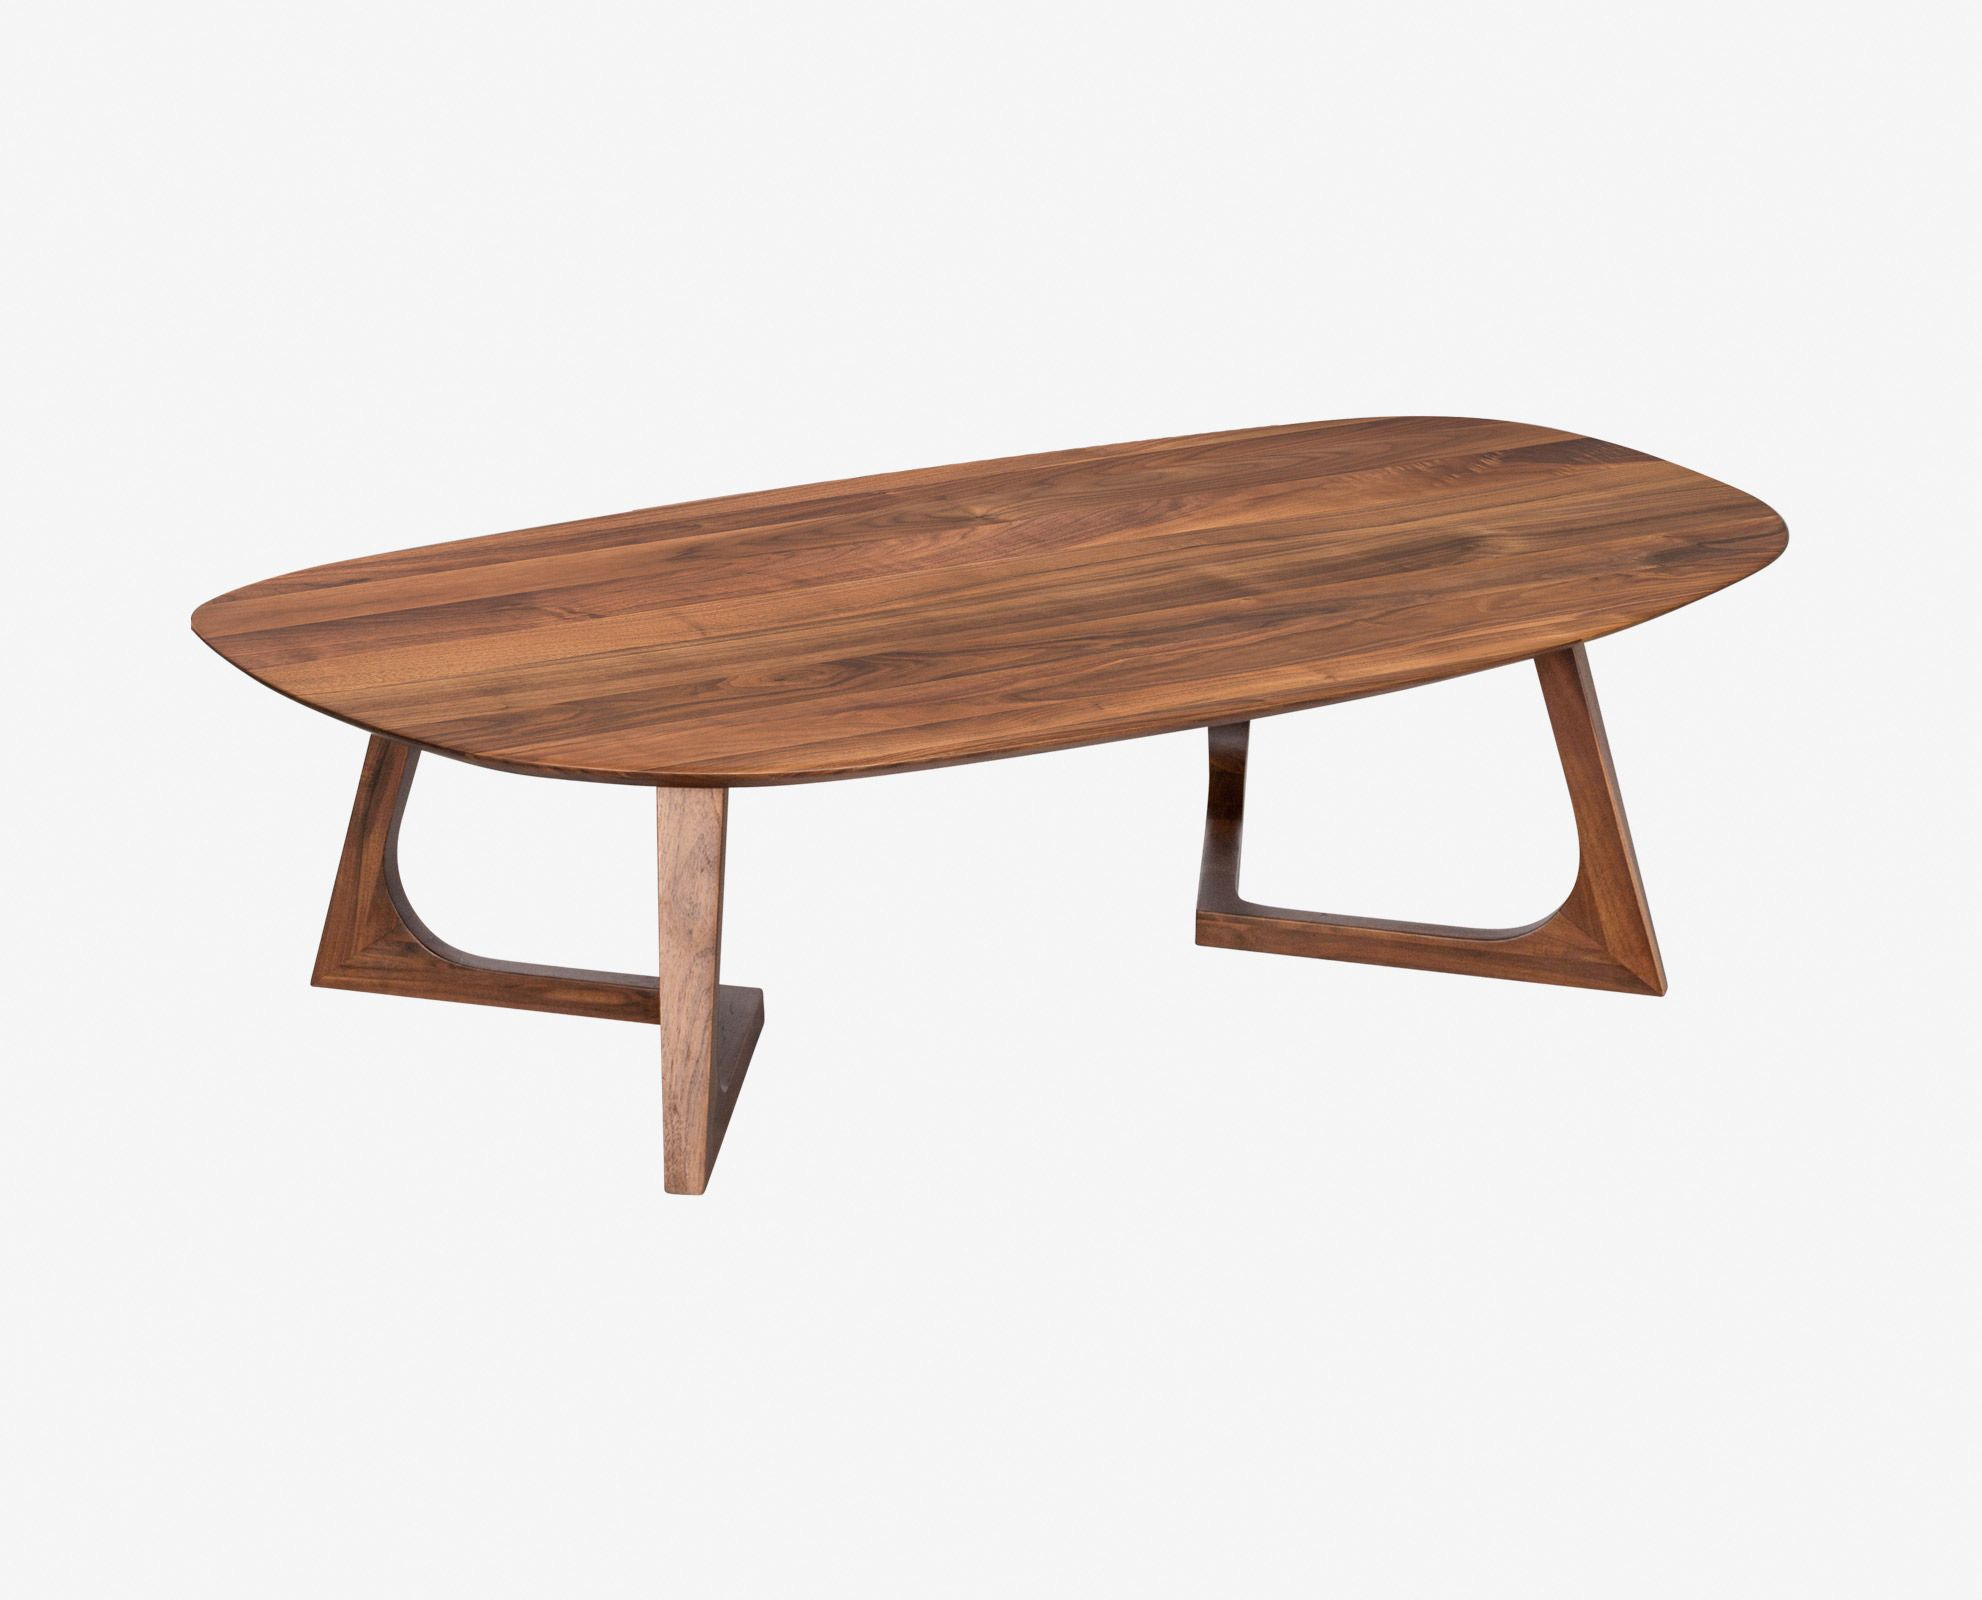 Dania   Crafted From Solid American Walnut, The Cress Coffee Table Boasts  An Organically Shaped Tabletop Supported By Elegantly Angled Legs.